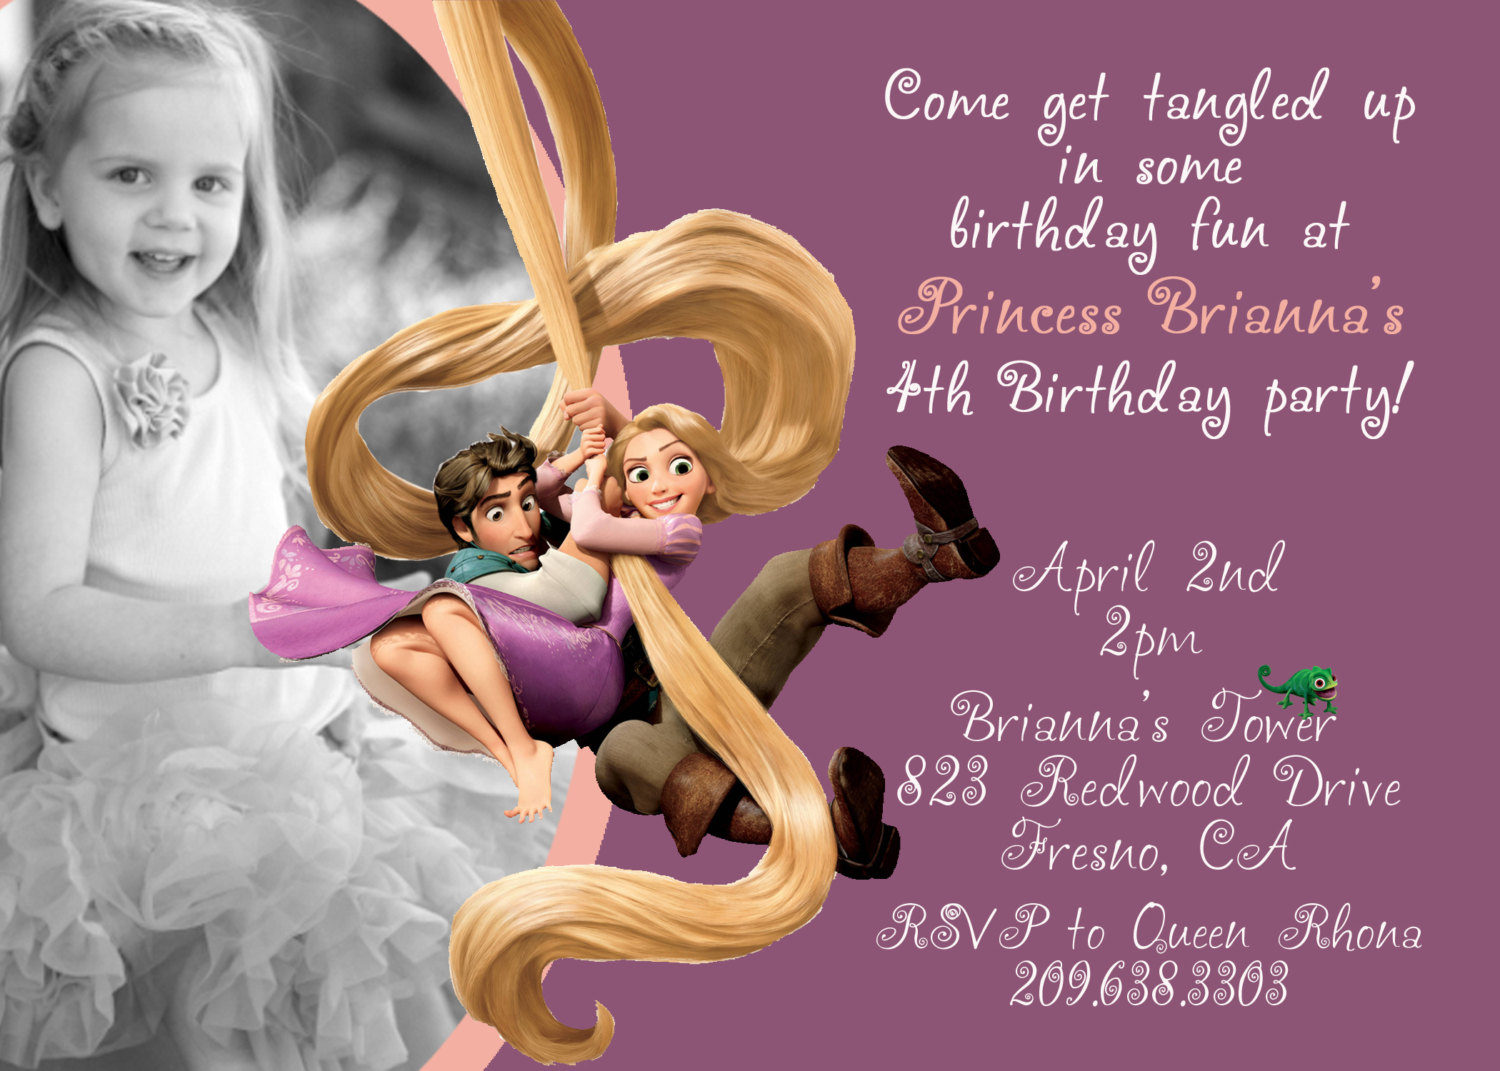 Rapunzel Party Invitations Mickey Mouse Invitations Templates – Rapunzel Party Invitations